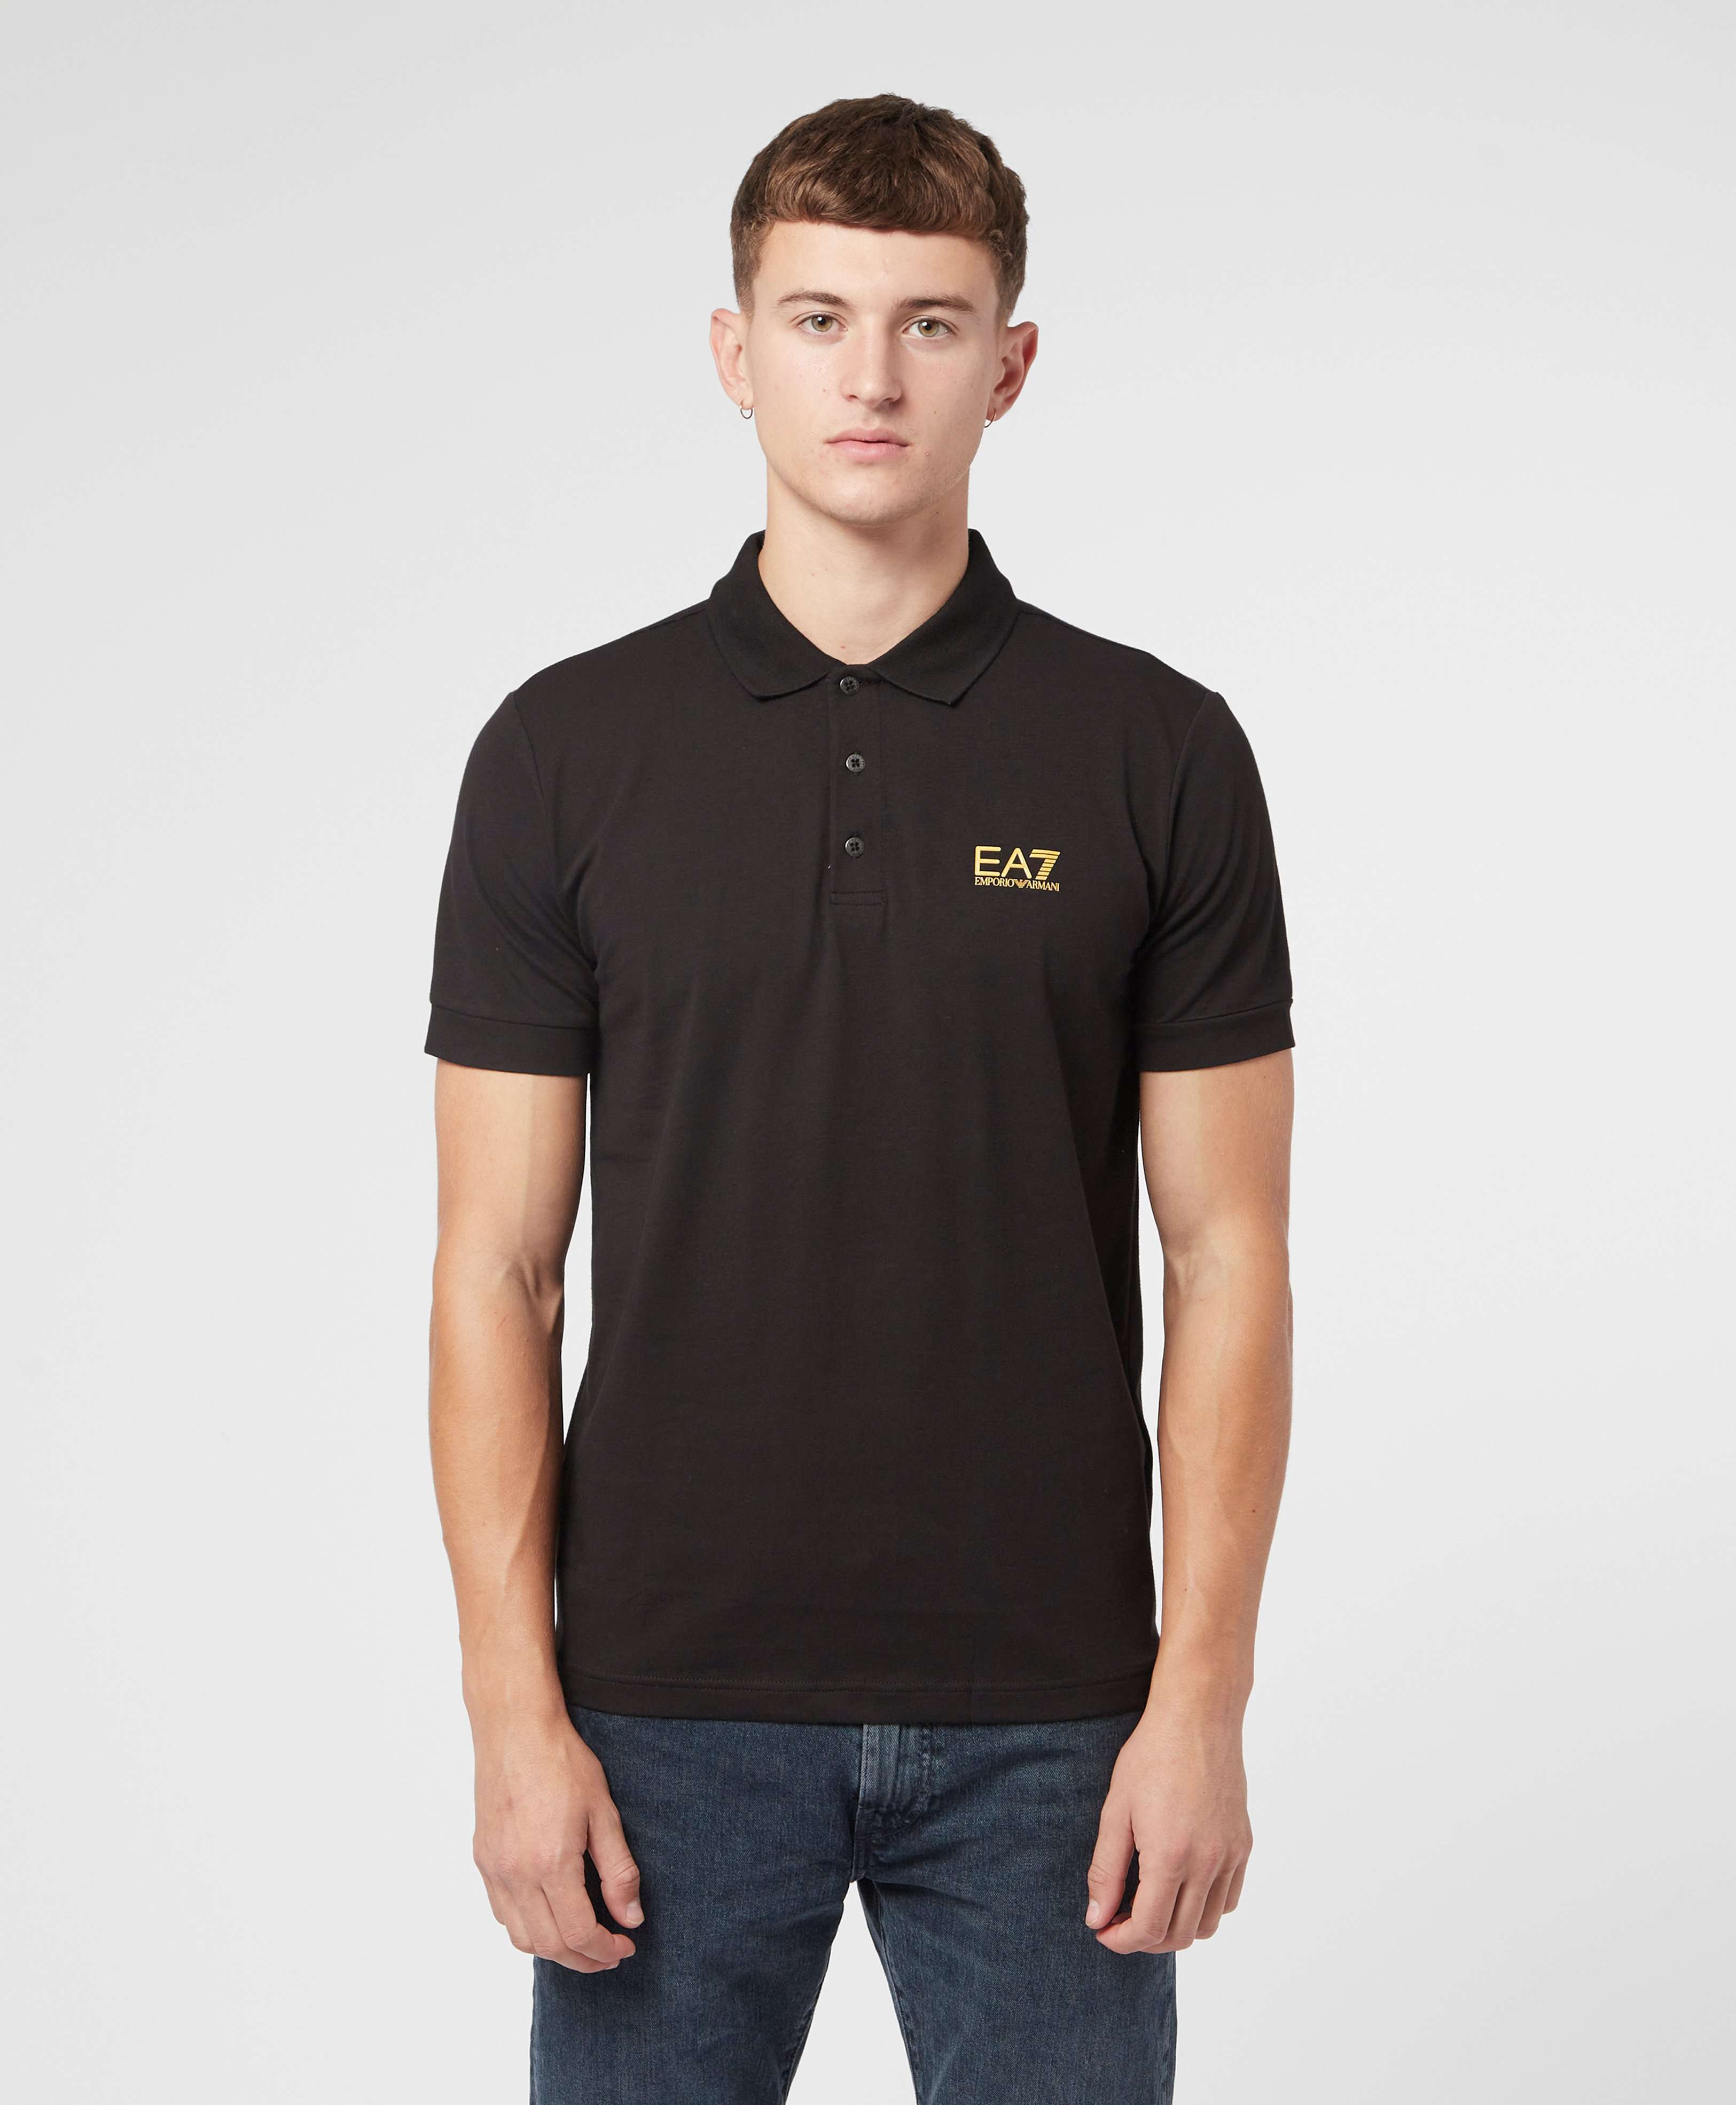 Emporio Armani EA7 Core Short Sleeve Polo Shirt